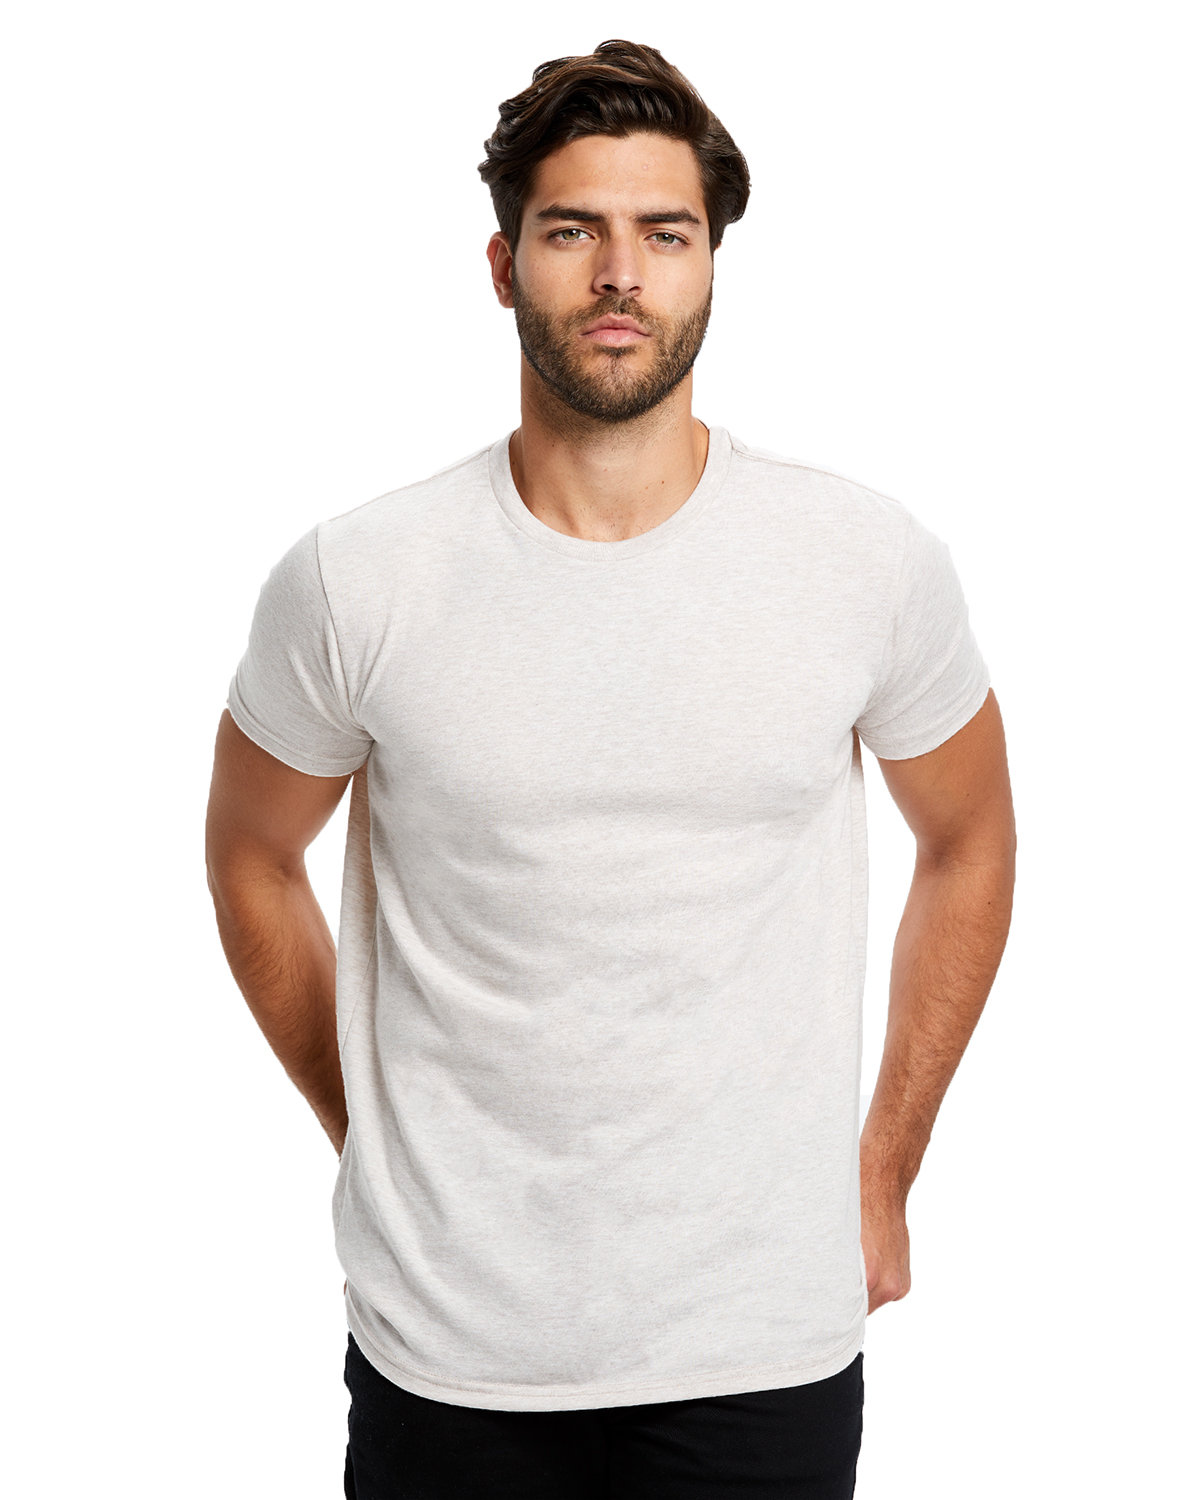 US Blanks Men's Short-Sleeve Made in USA Triblend T-Shirt TRI OATMEAL